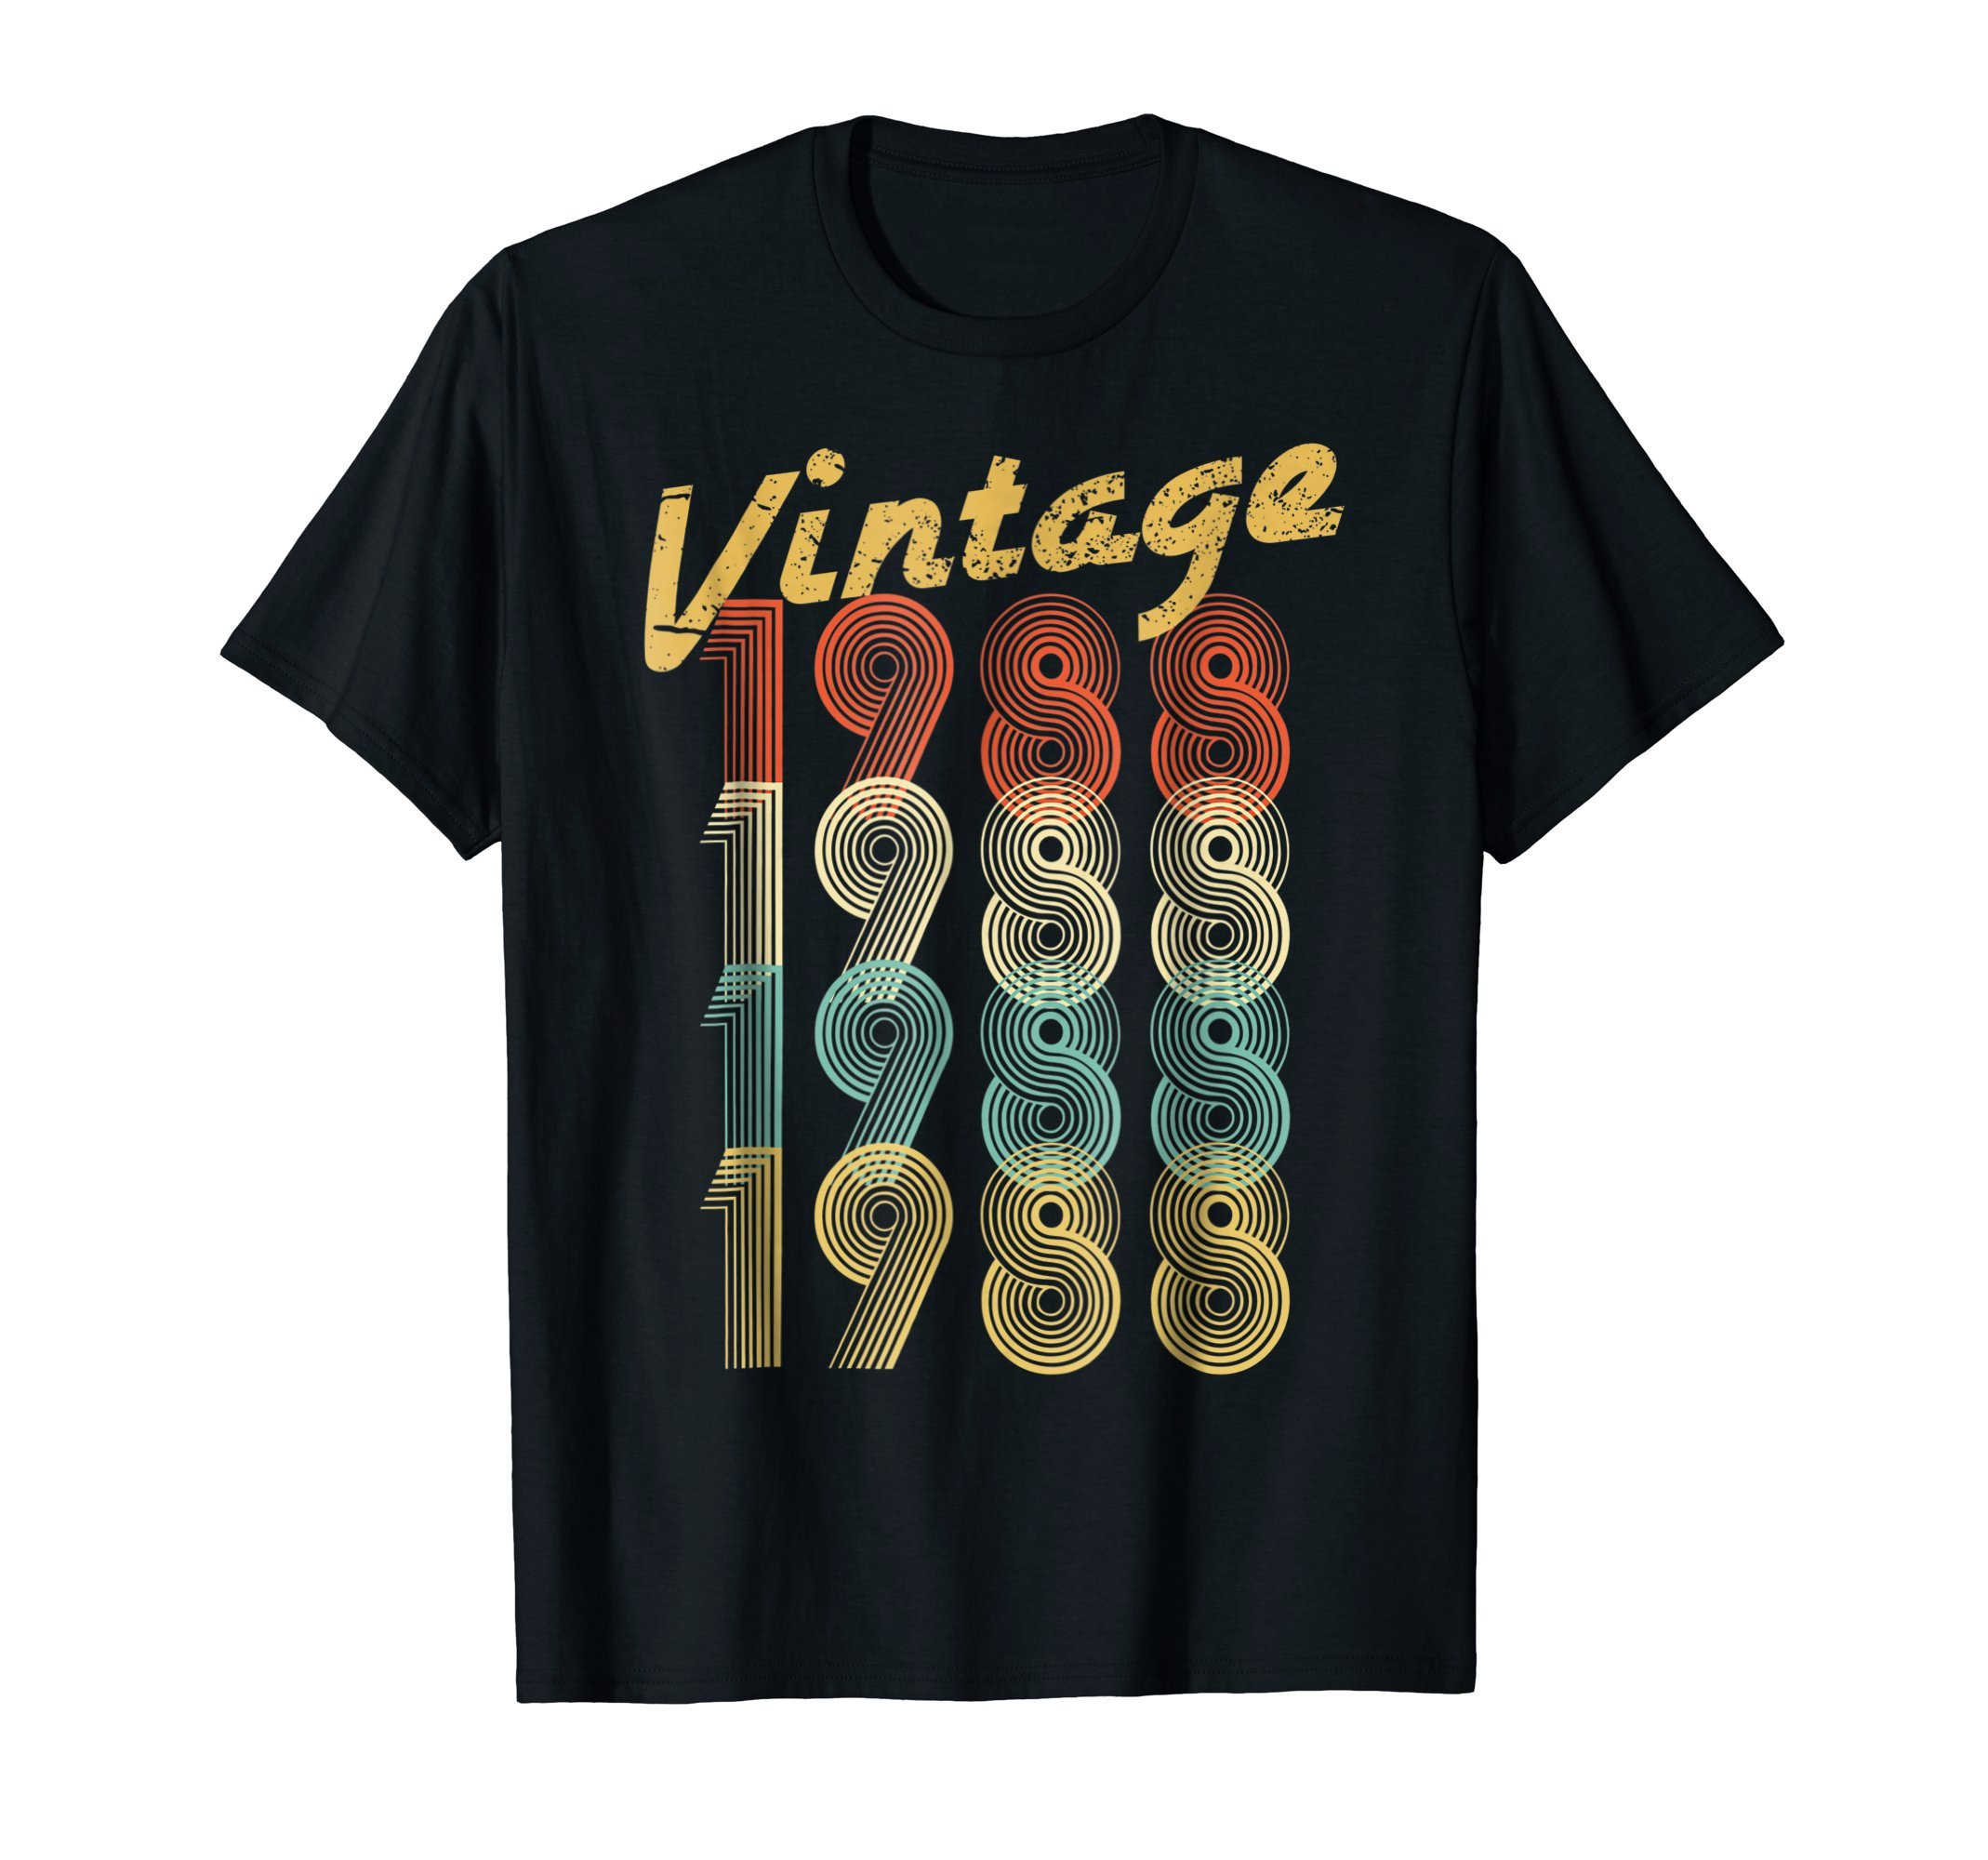 1988 Vintage Funny 30th Birthday Gift Shirt For Him or Her